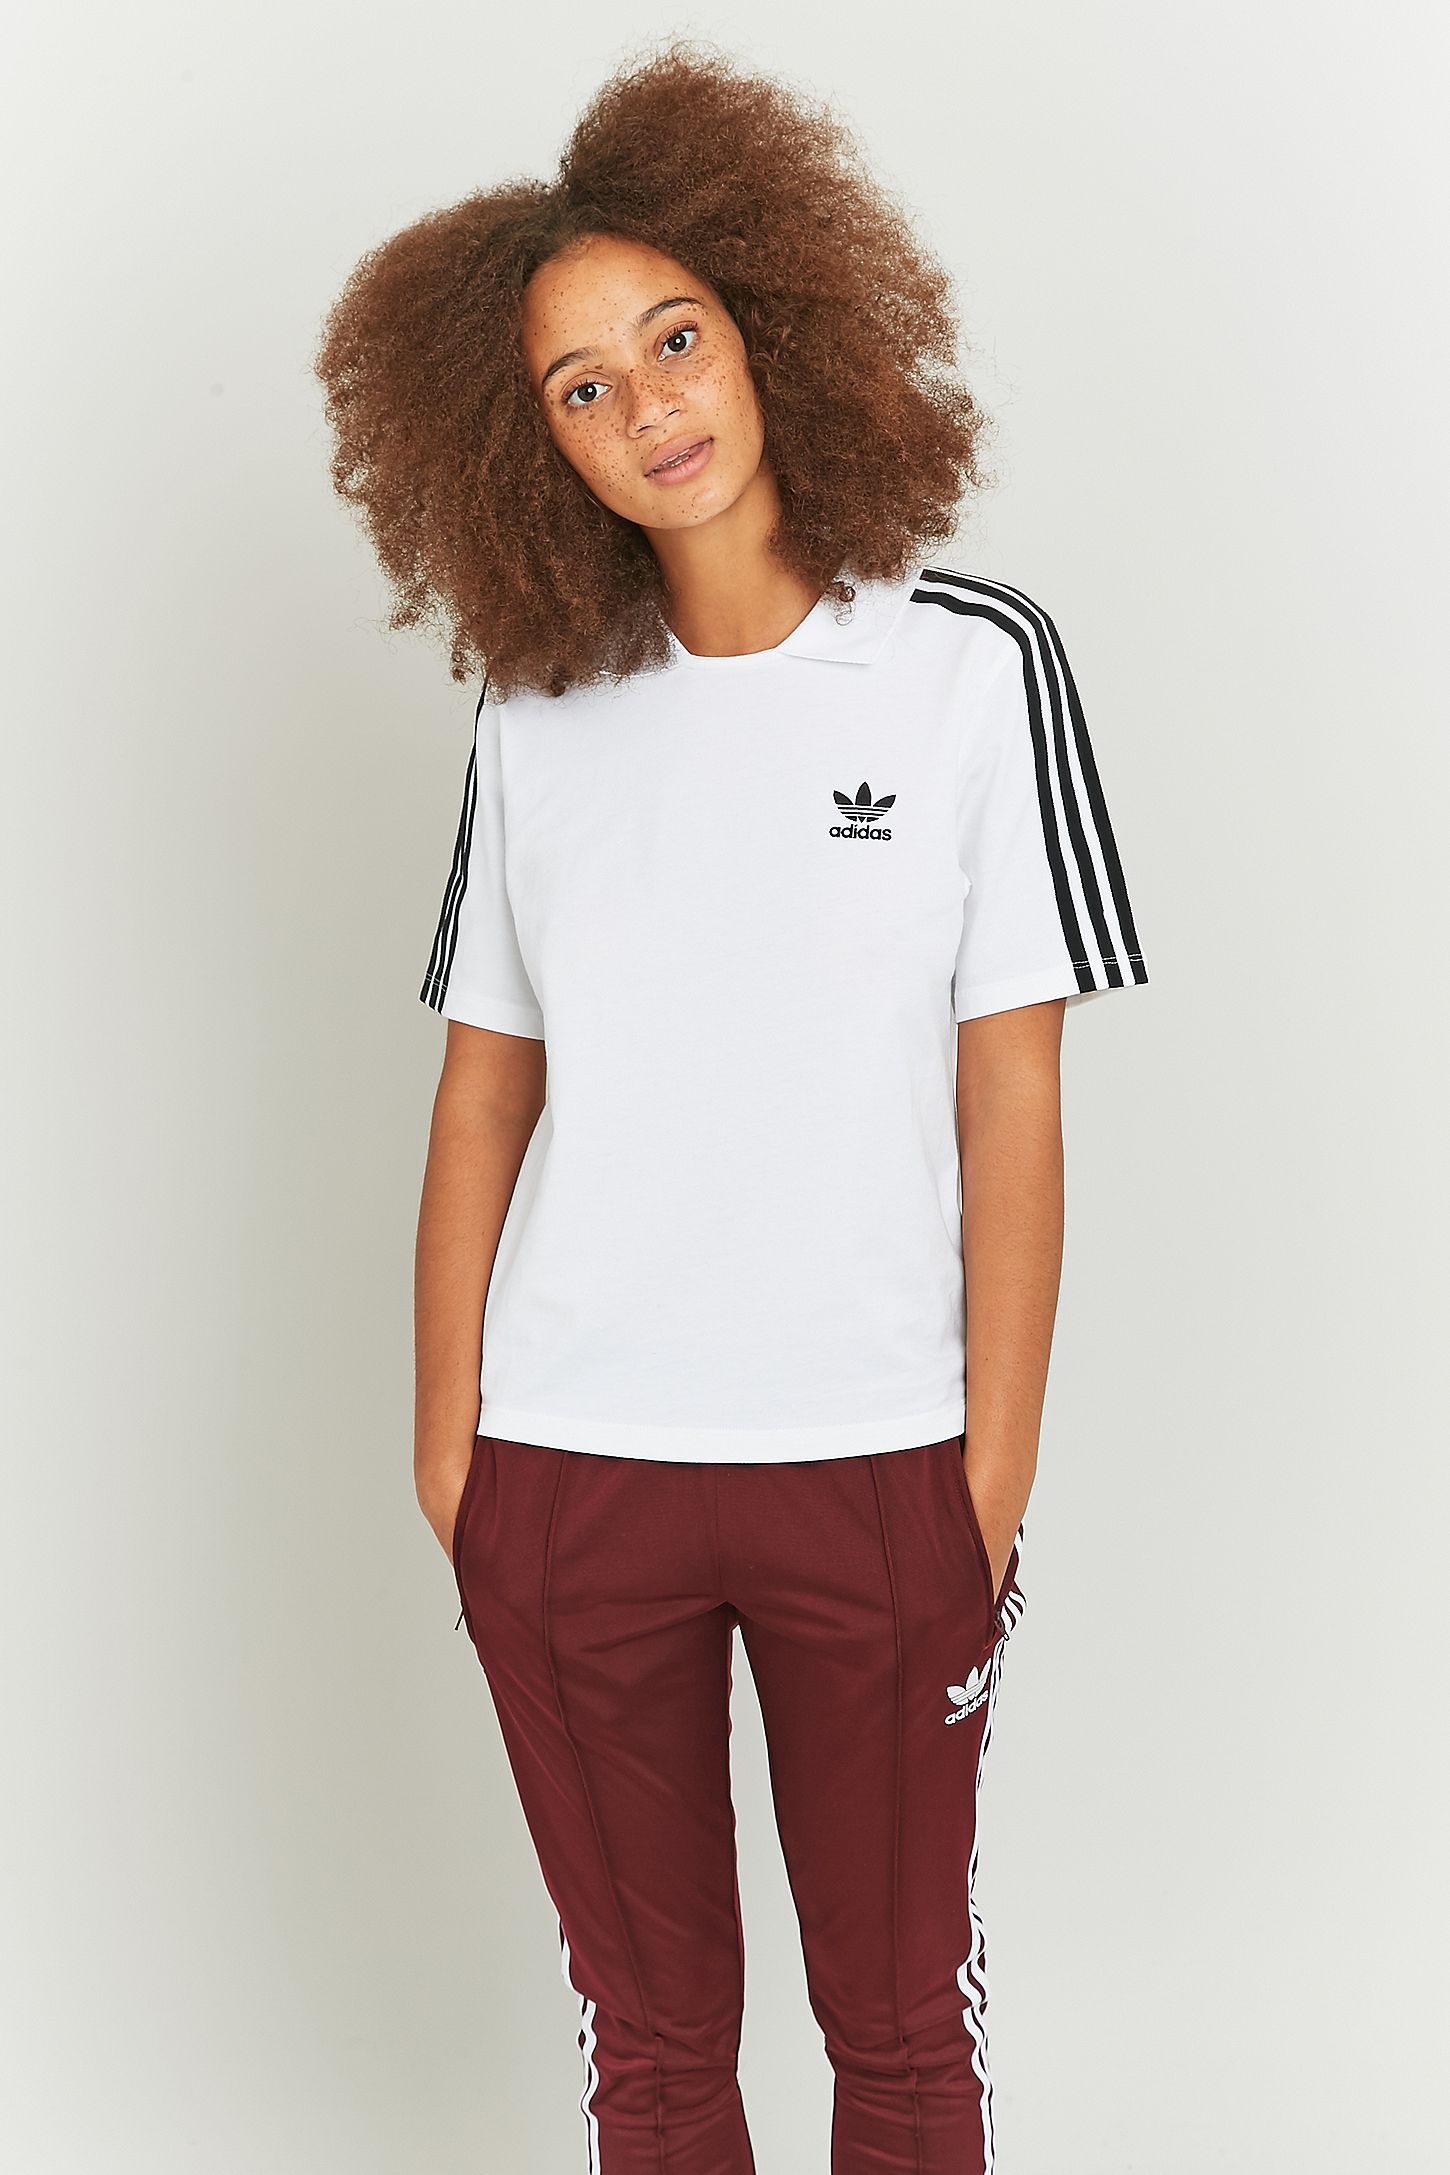 41b175065 adidas Originals 3 Stripe White Polo T-shirt. Click on image to zoom. Hover  to zoom. Double Tap to Zoom